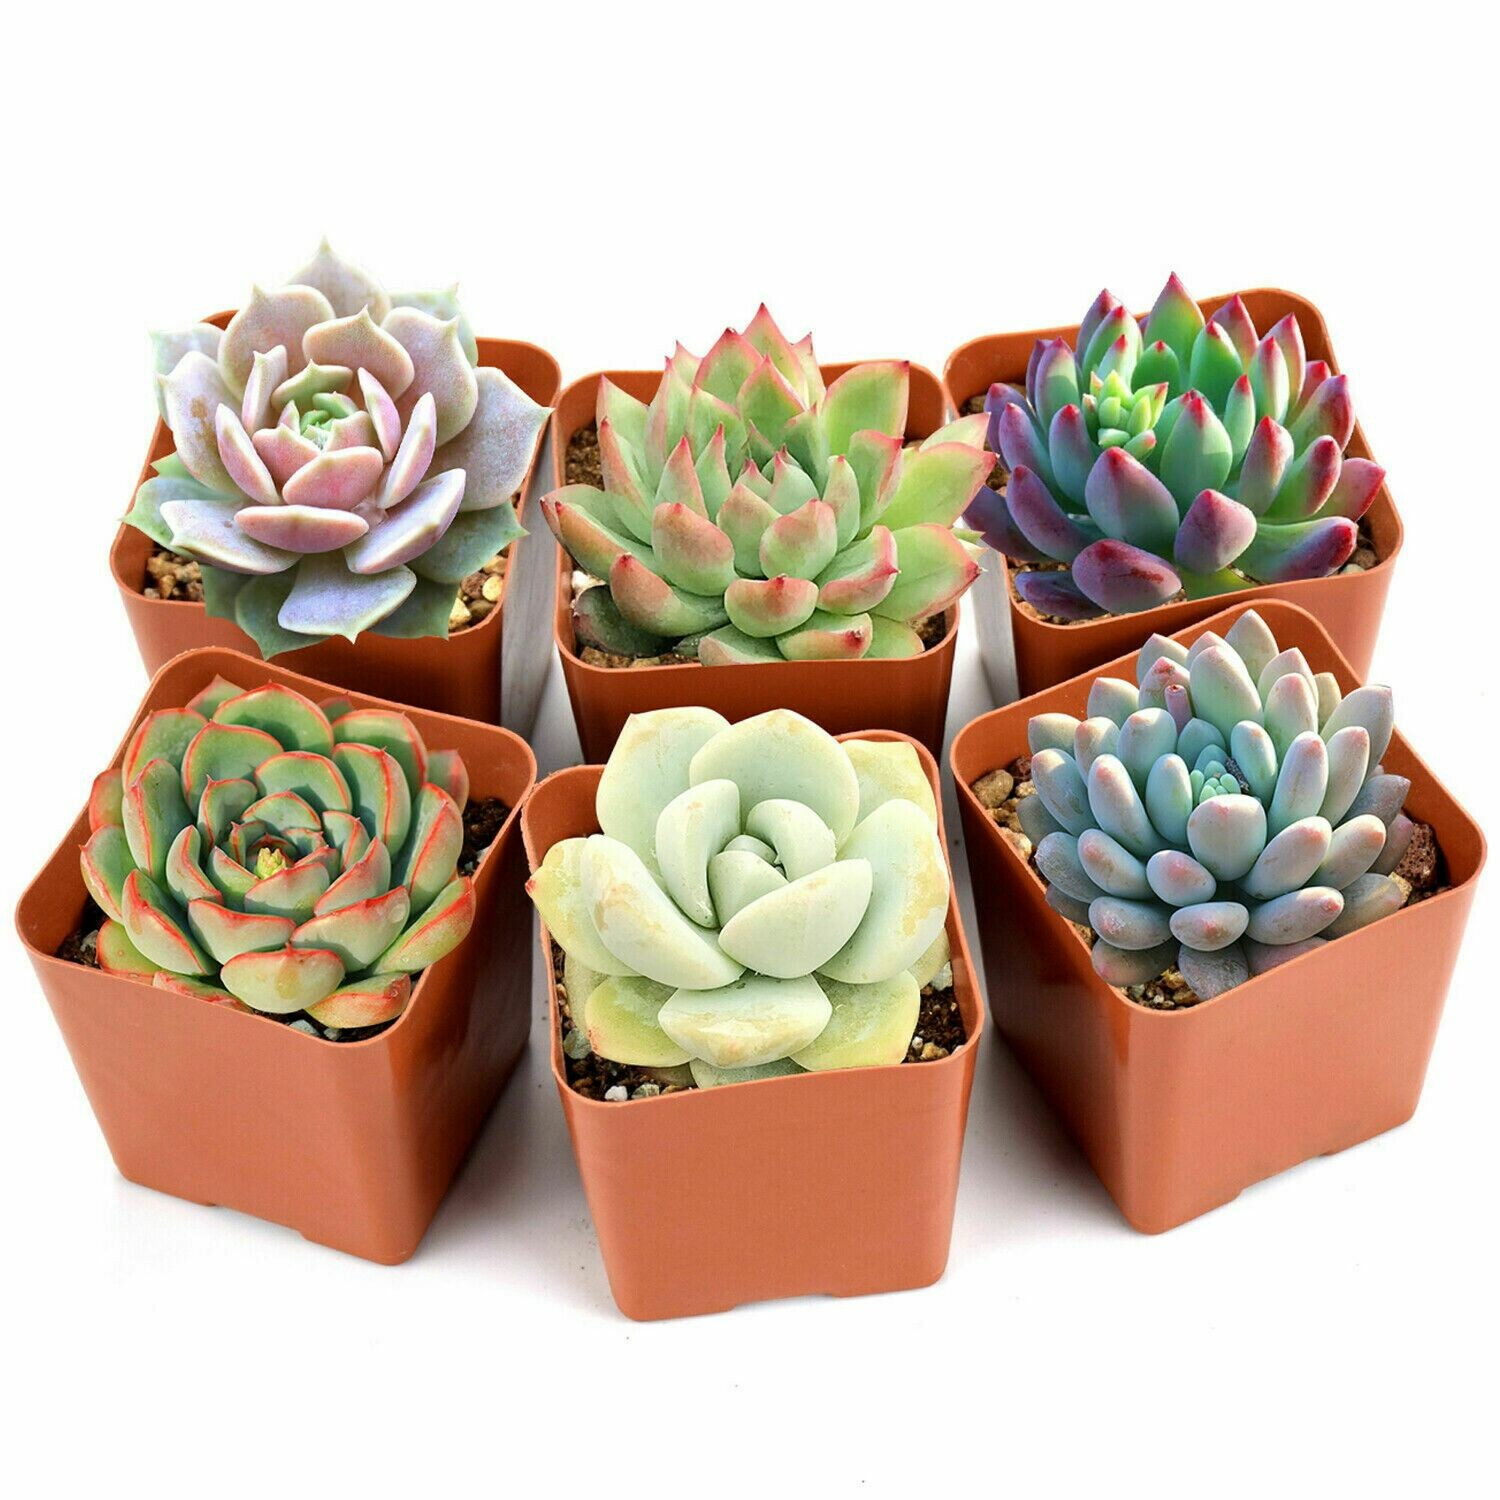 Succulent Plants, 6 Pack of Assorted Rosettes, Fully Rooted in Planter Pots with Soil, Rare Varieties, Unique Real Live Indoor Succulents/Cactus Décor by The Next Gardener